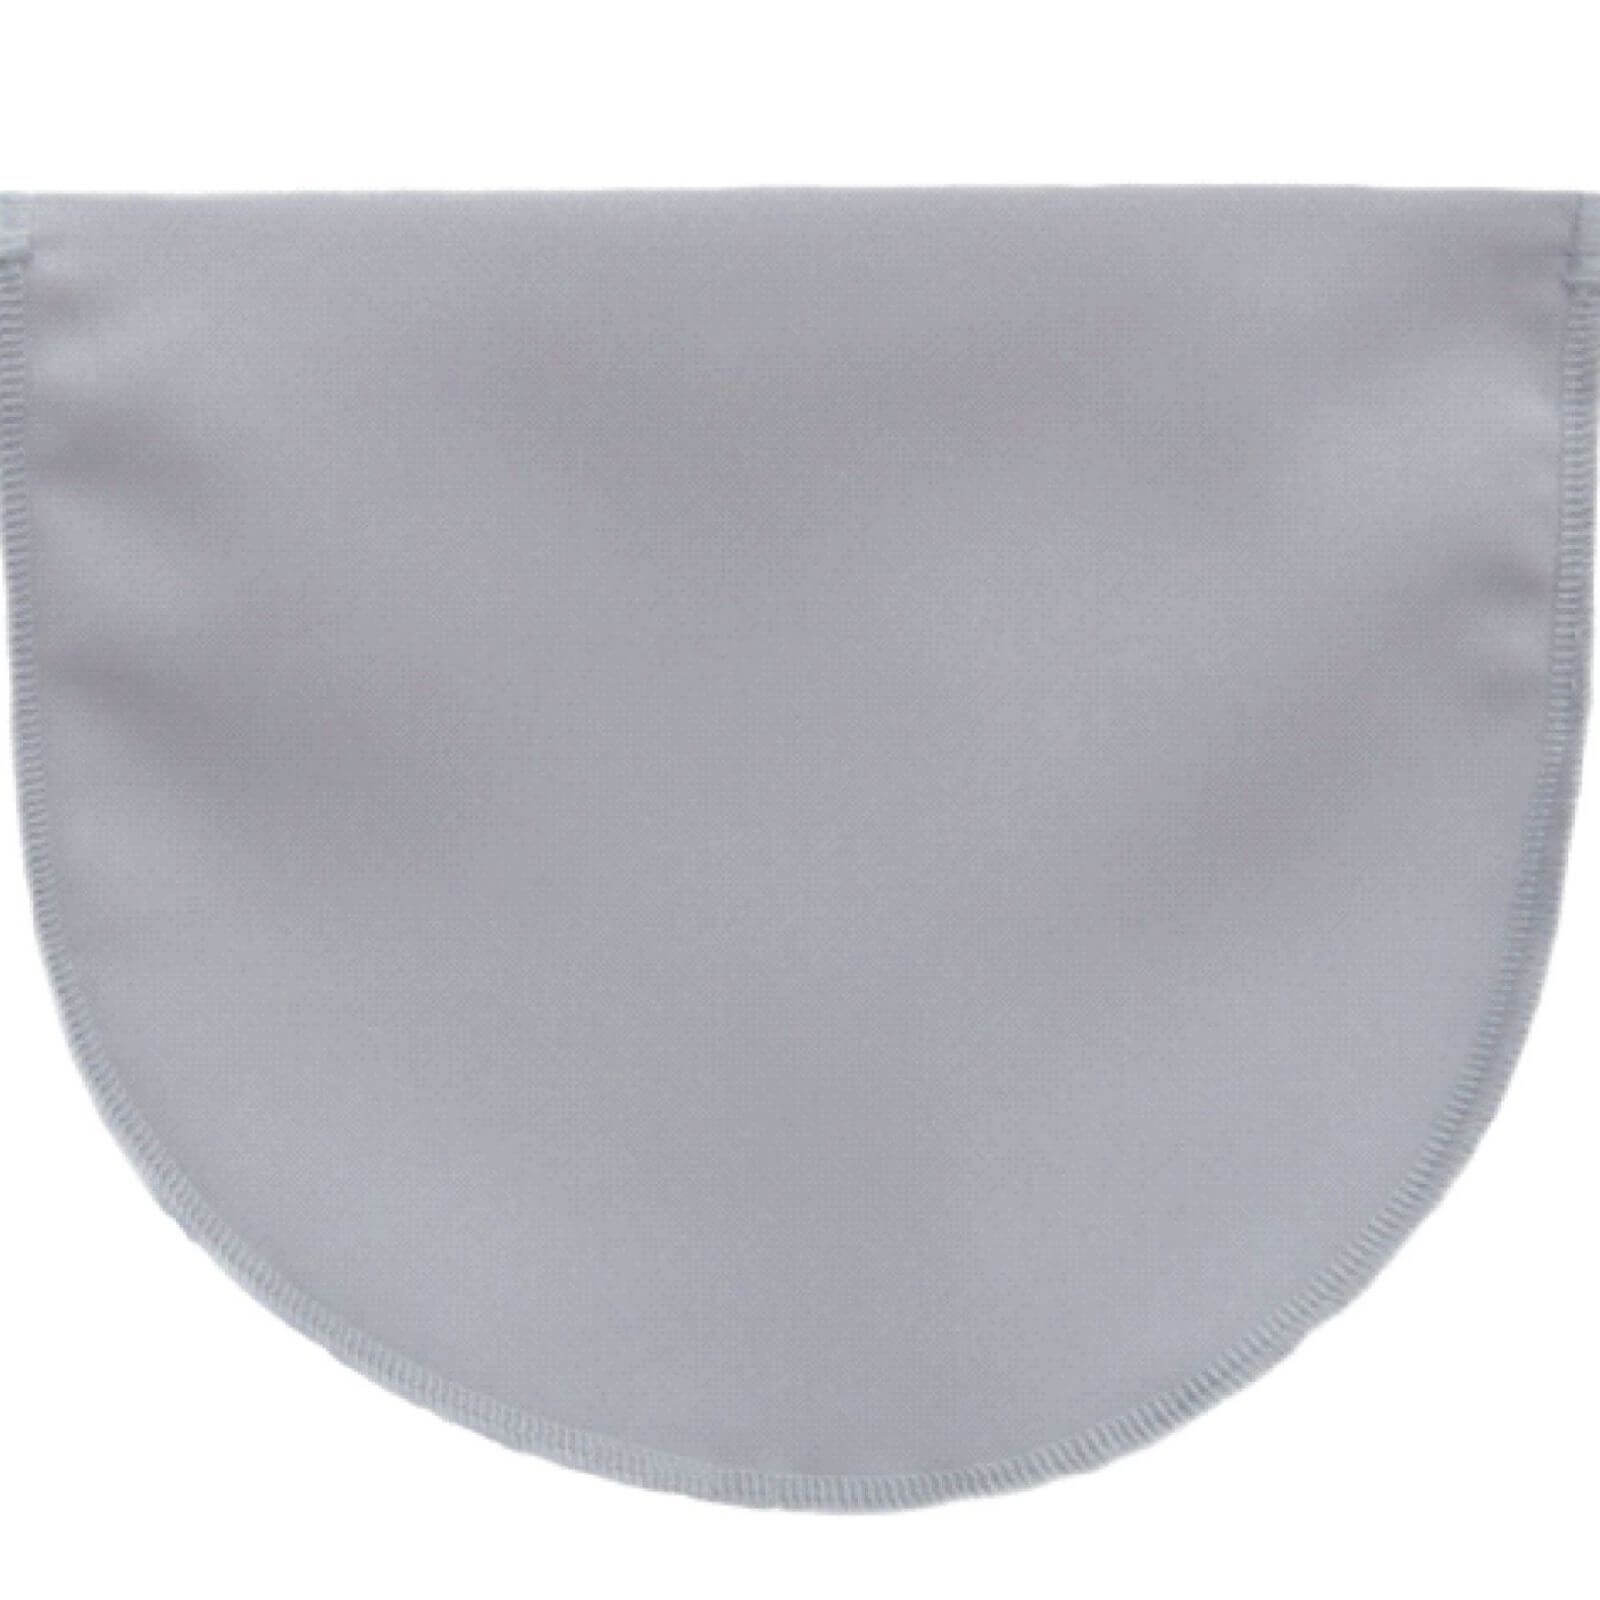 Grey Modesty panel with no lace